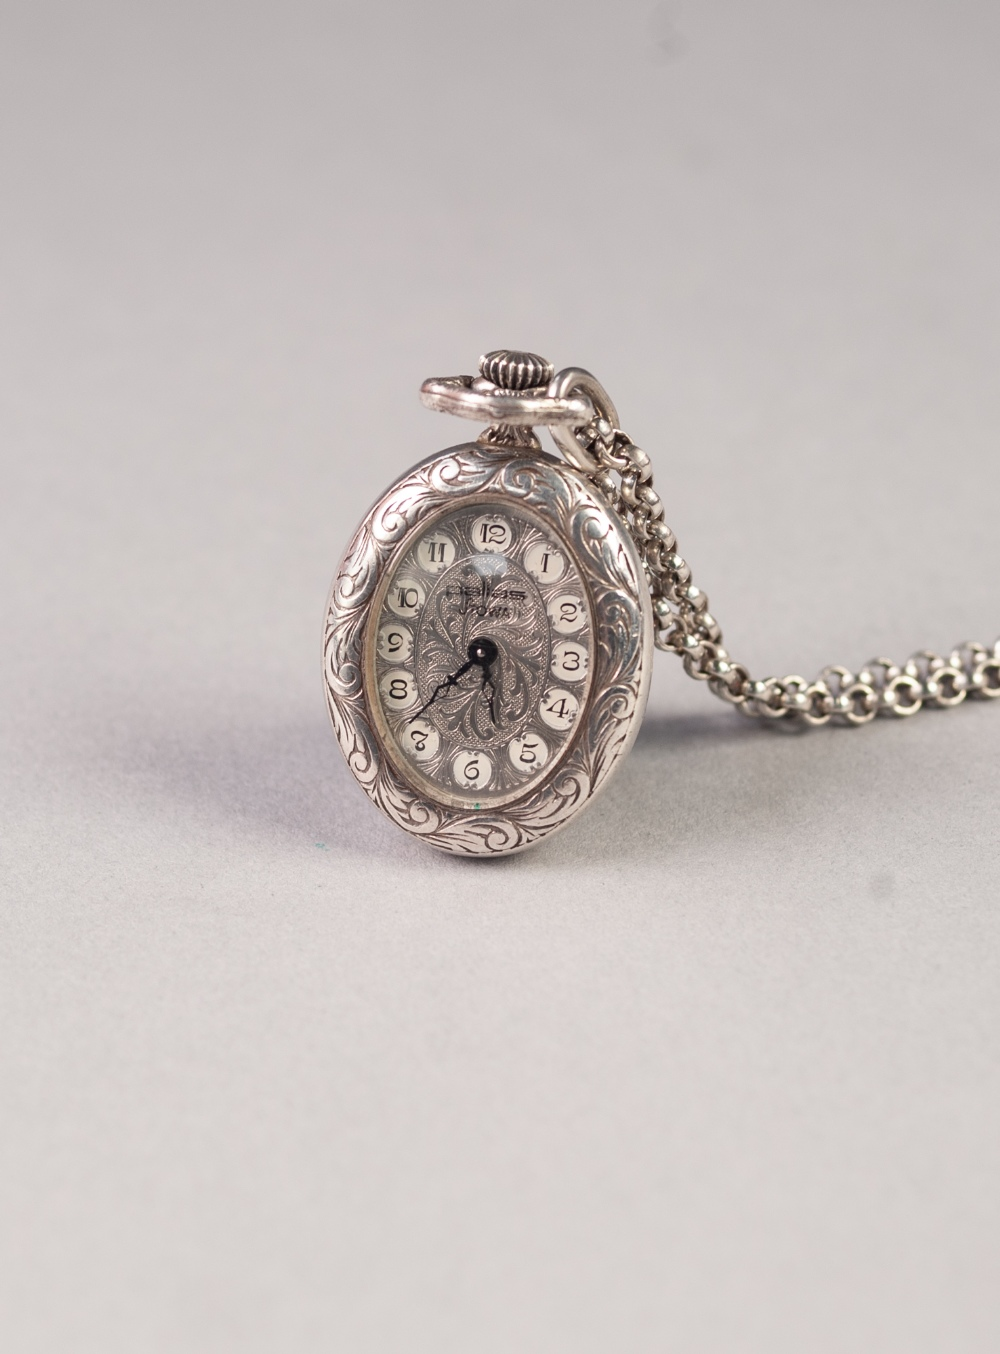 Lot 24 - PALLASS, STOWA, SILVER OVAL PENDANT WATCH, with mechanical movement, engine turned Arabic oval dial,